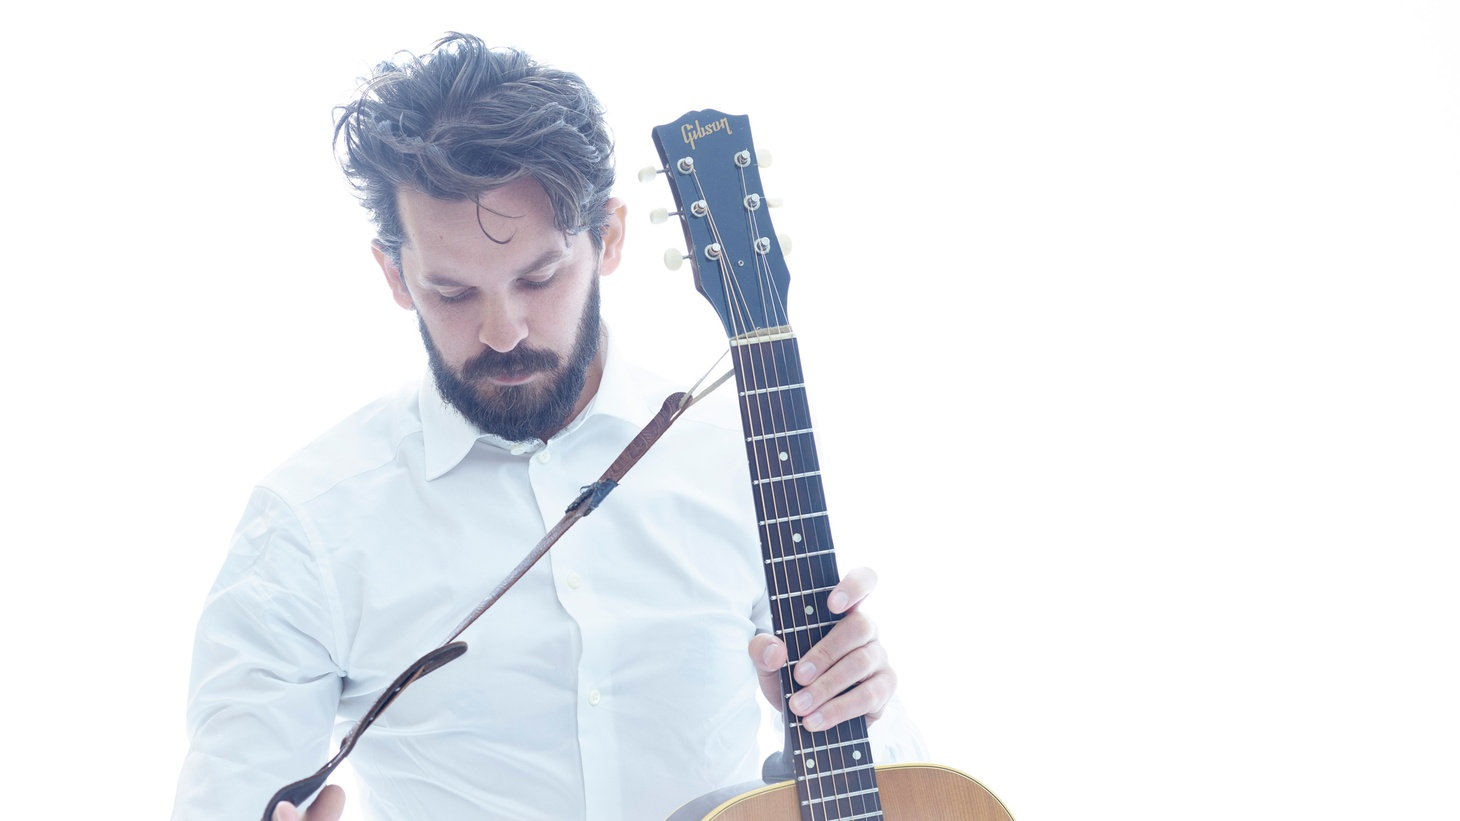 """Thomas Dybdahl offers one of the most beautiful songs in his new opus, """"Look At What We've Done,"""" a slinky gem made for late night romance."""